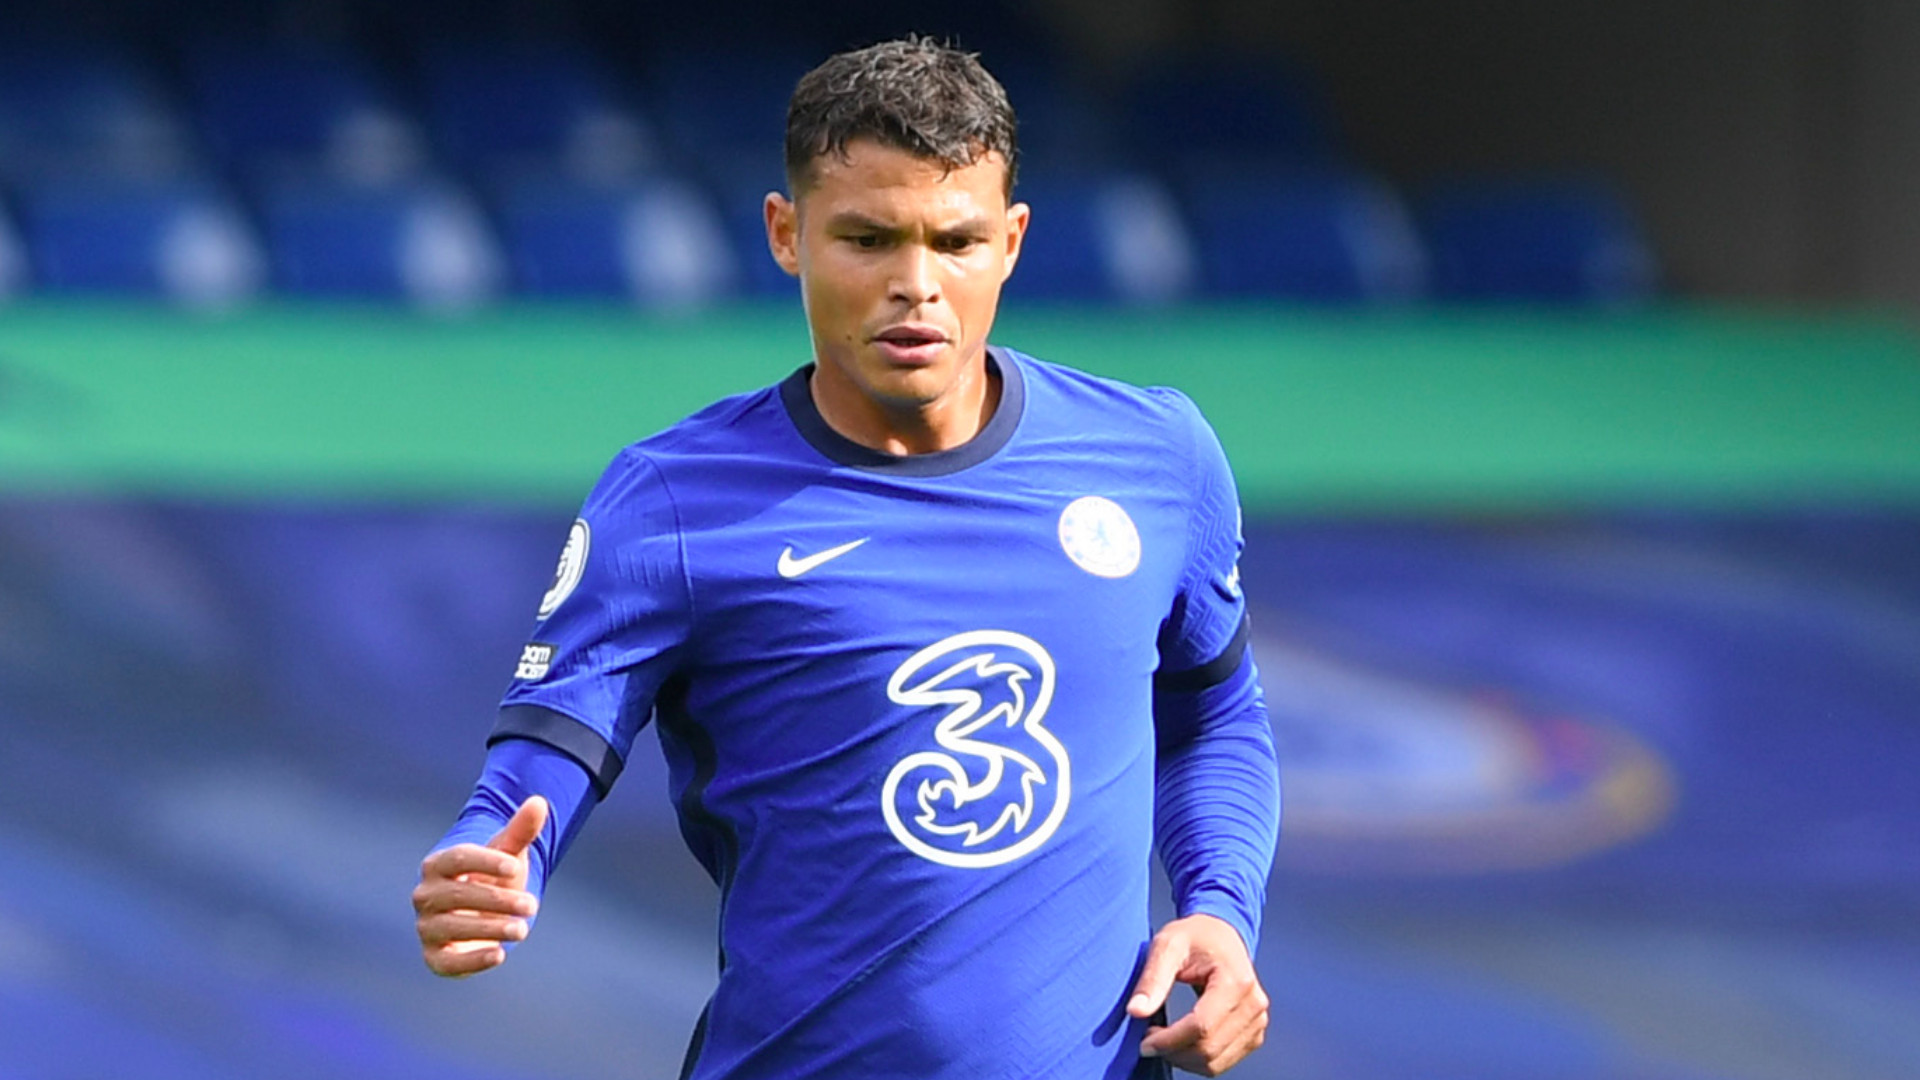 'Thiago Silva has got everything!' - Zouma 'excited to learn from' Chelsea's summer signing